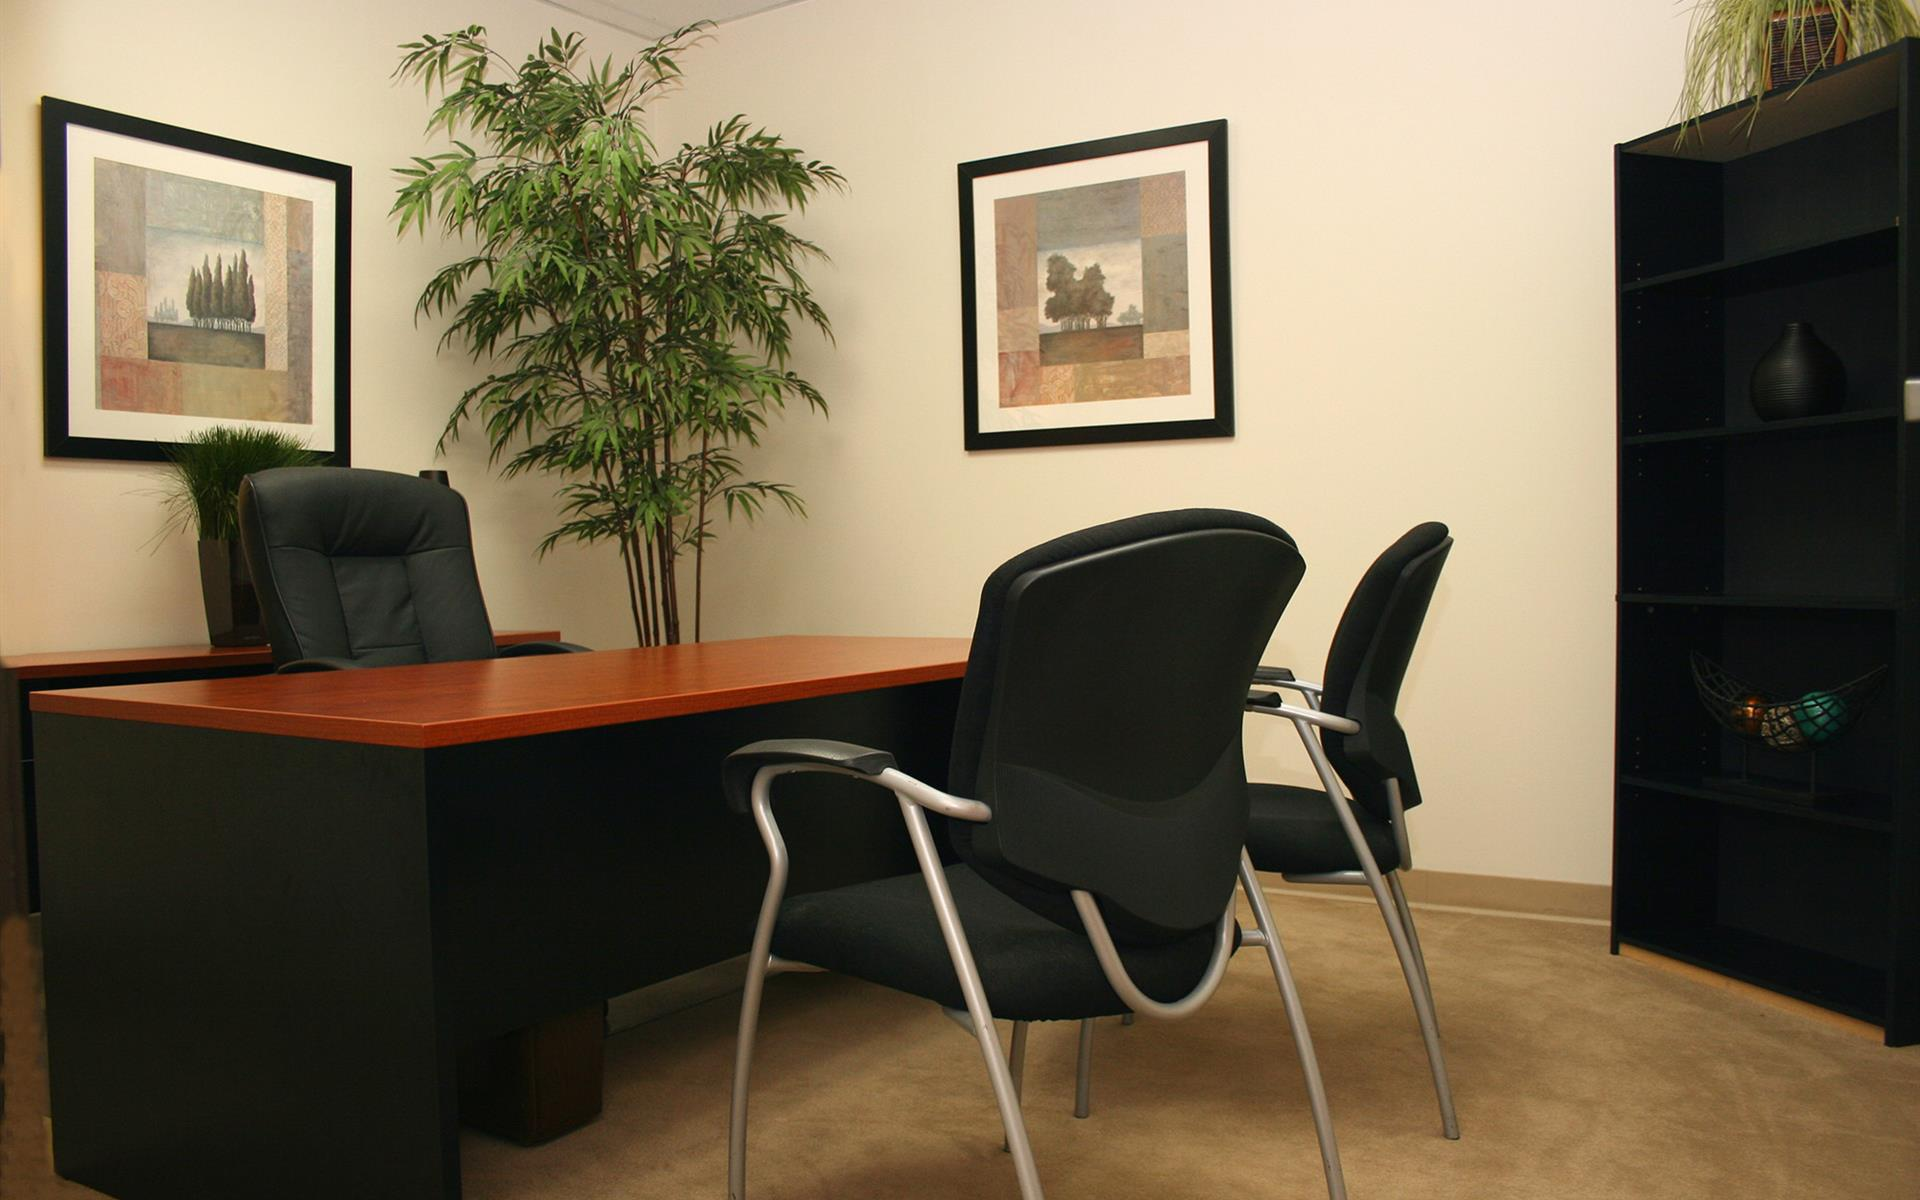 (RSM) Rancho Santa Margarita - Interior Office